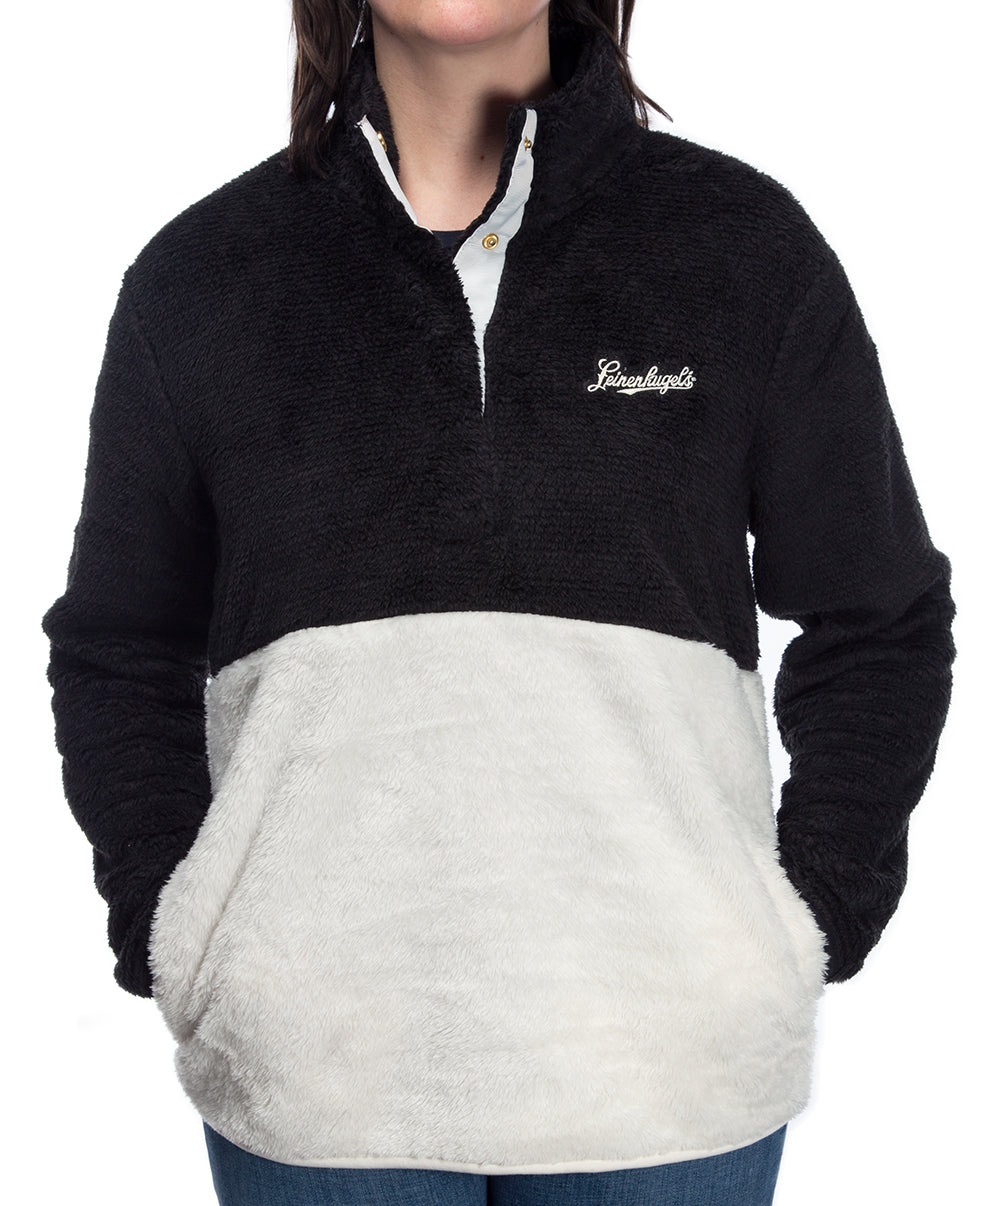 LADIES SNAP FUZZY PULLOVER